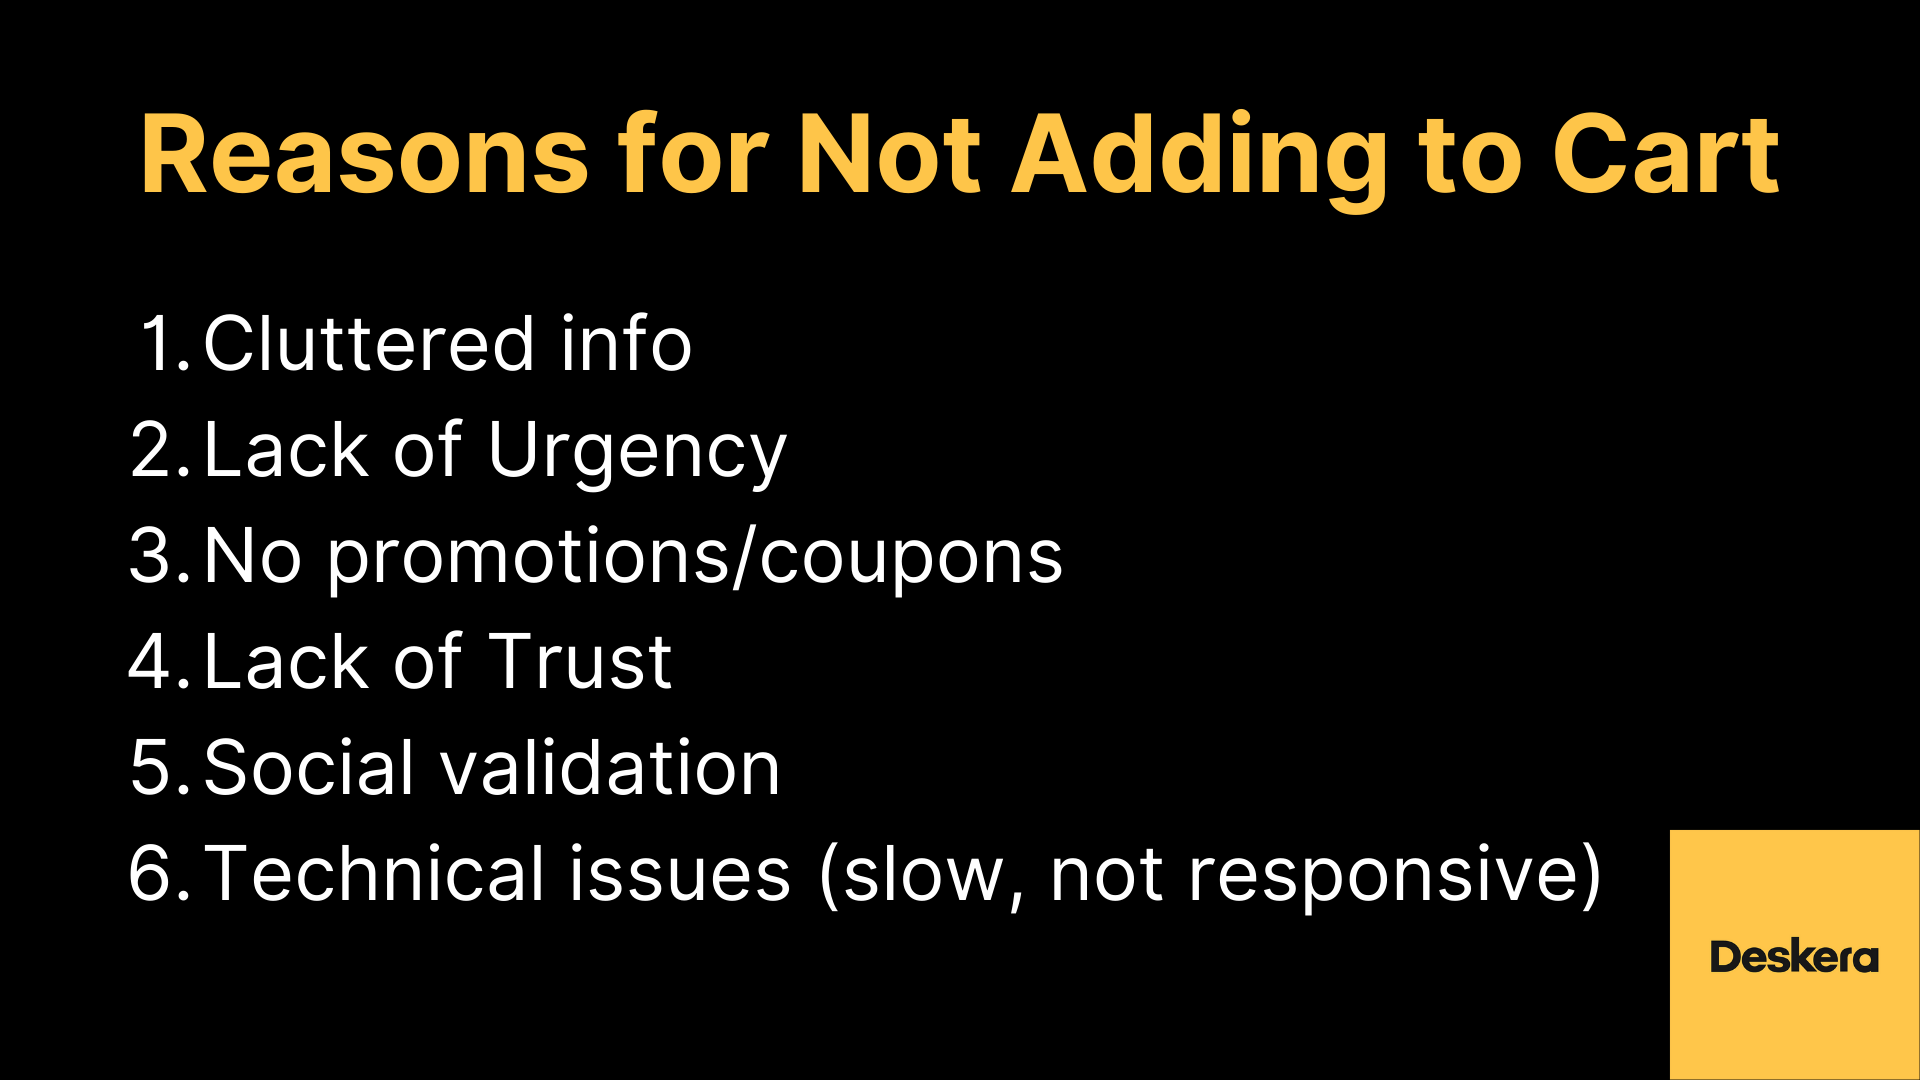 Reasons for Not Adding to Cart on eCommerce Business